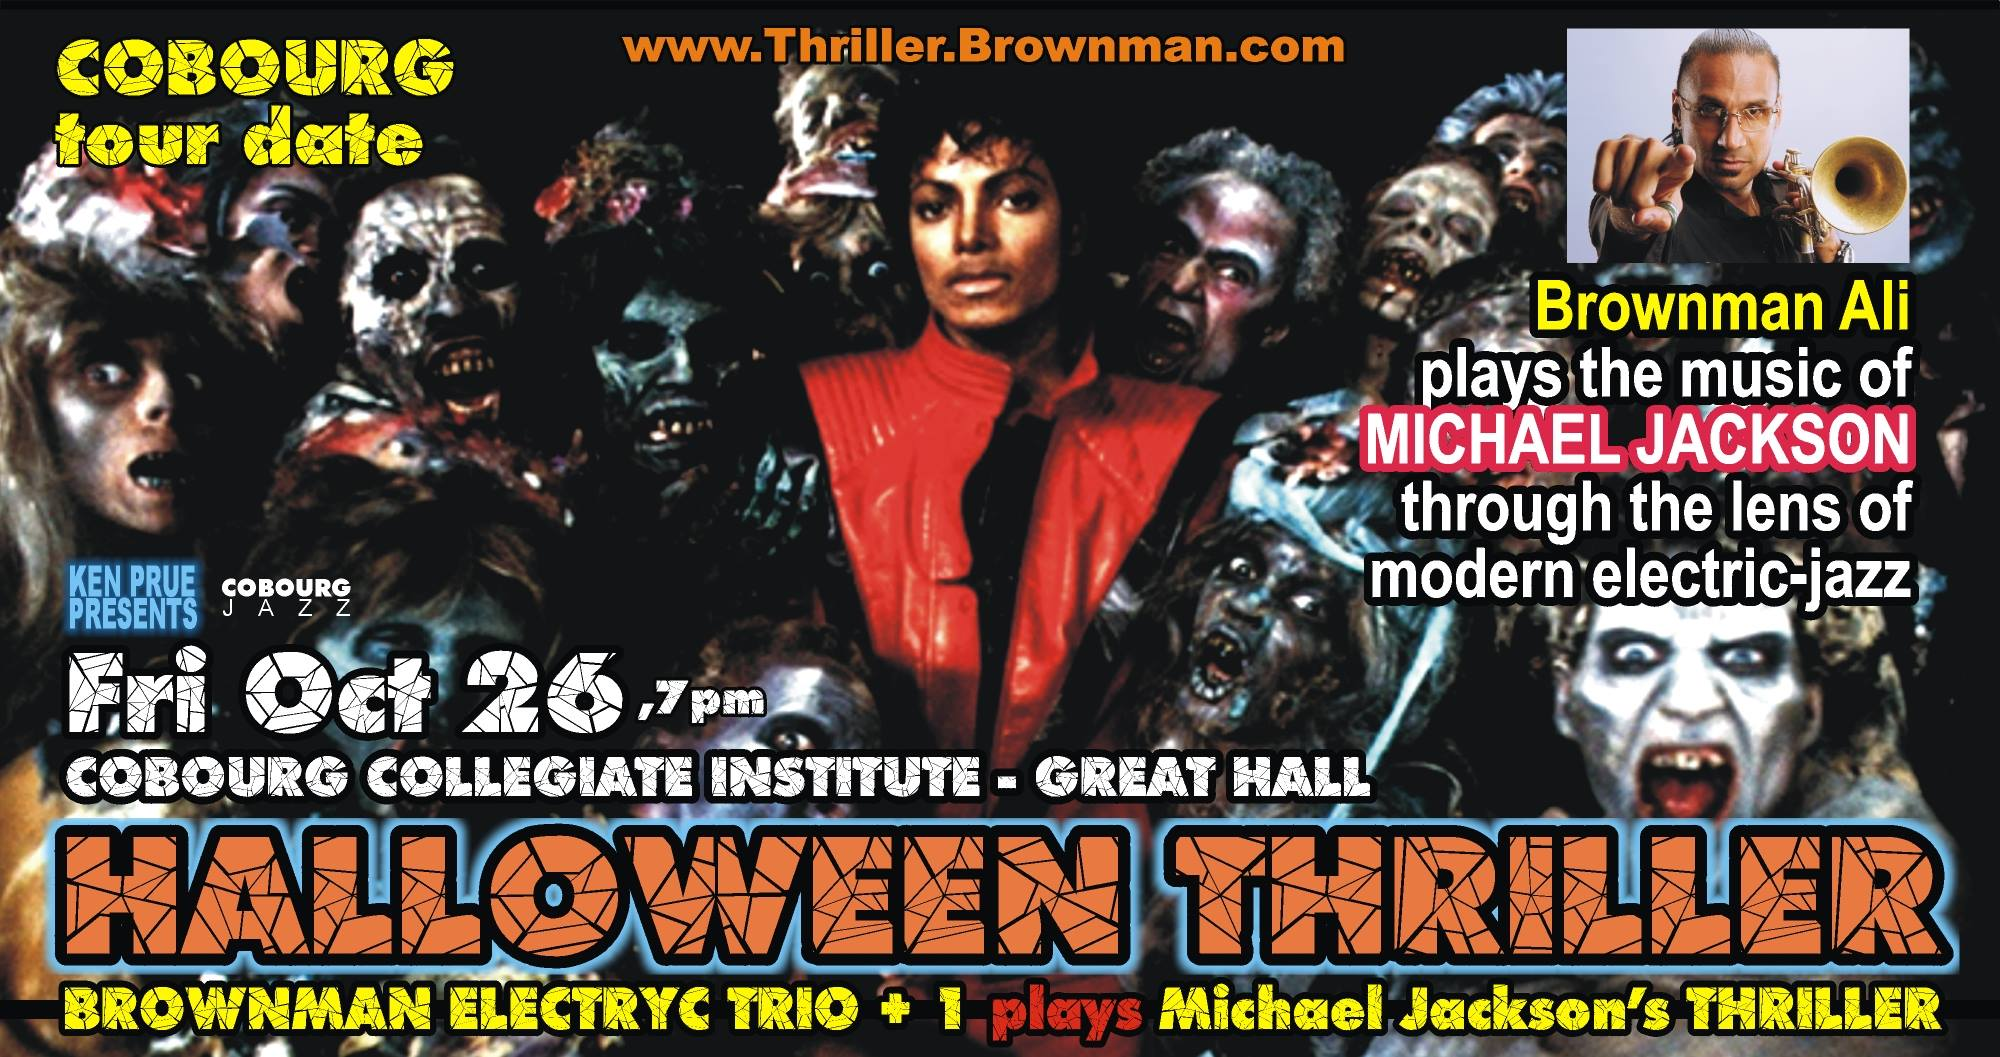 BROWNMAN'S Halloween Thriller (cobourg) - Michael Jackson As Electric-jazz